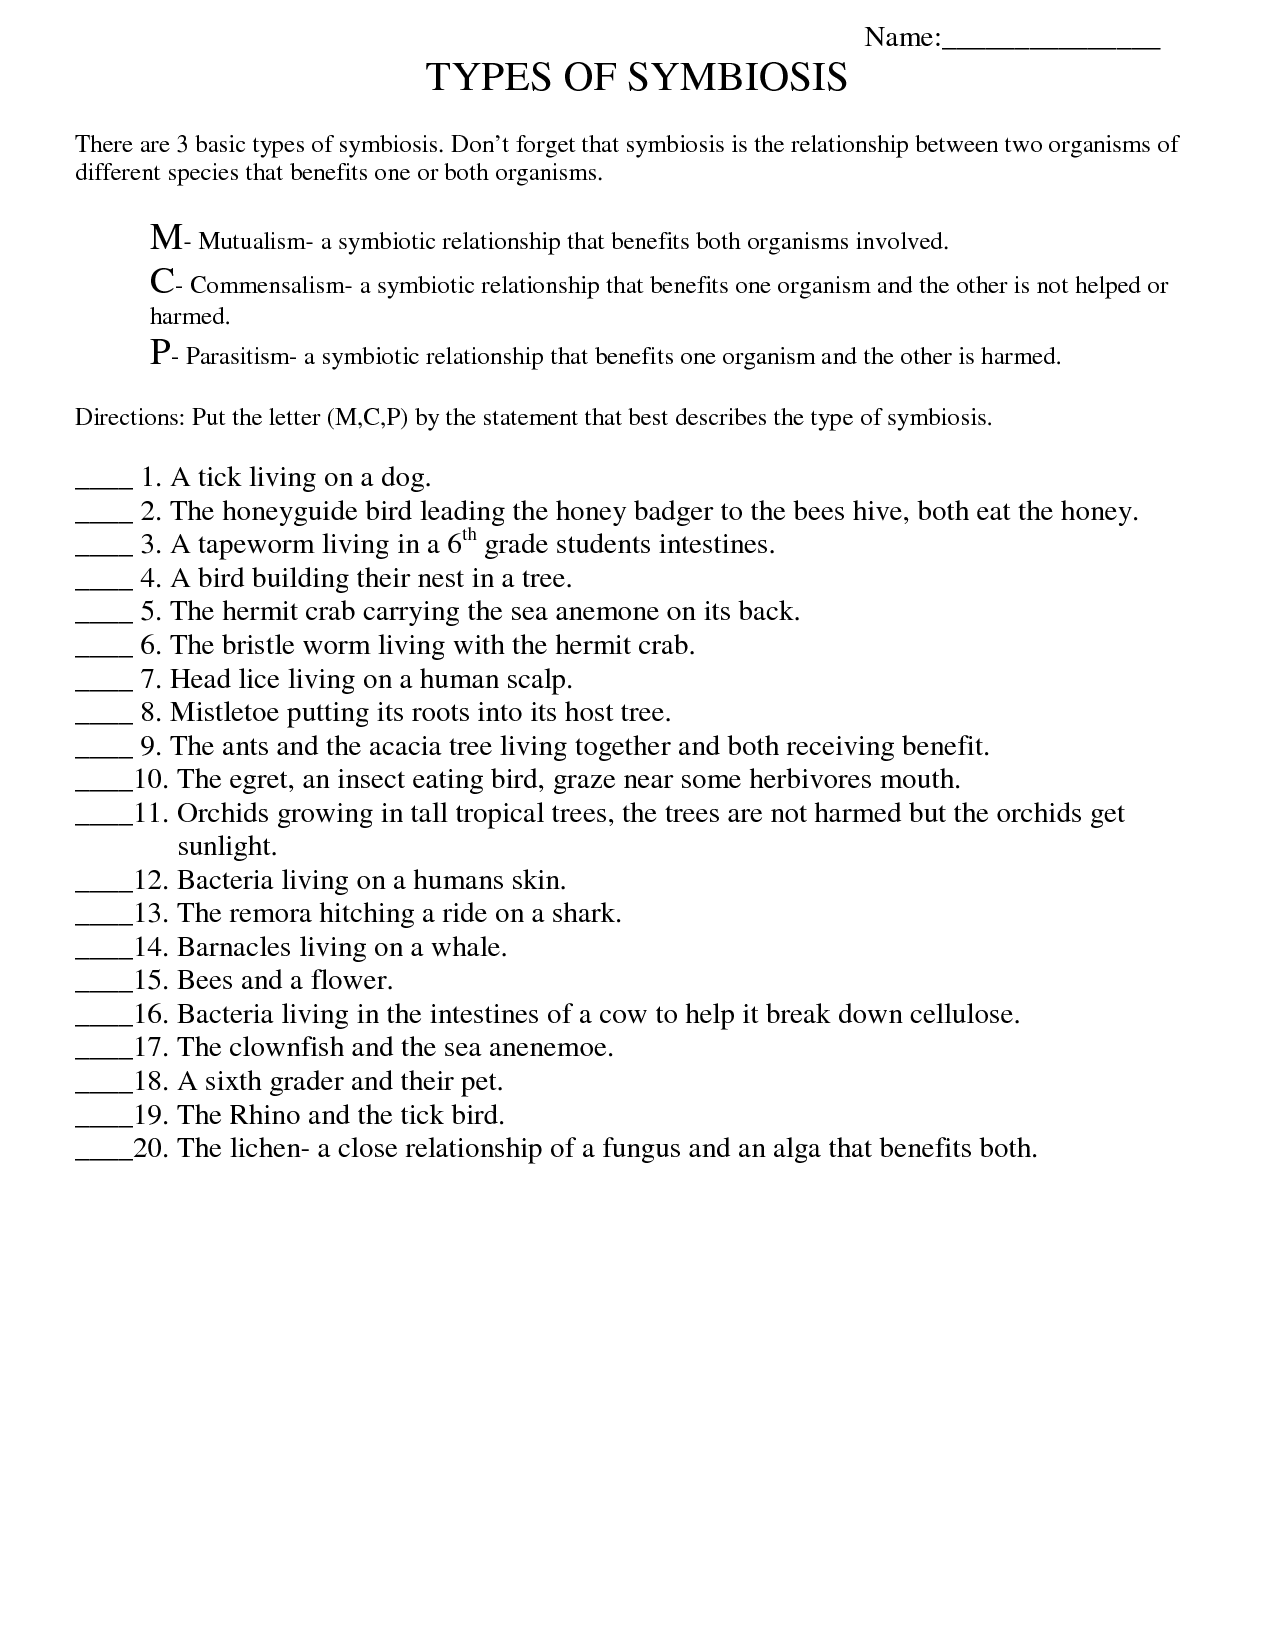 Ecological Relationships Worksheet Answers Key